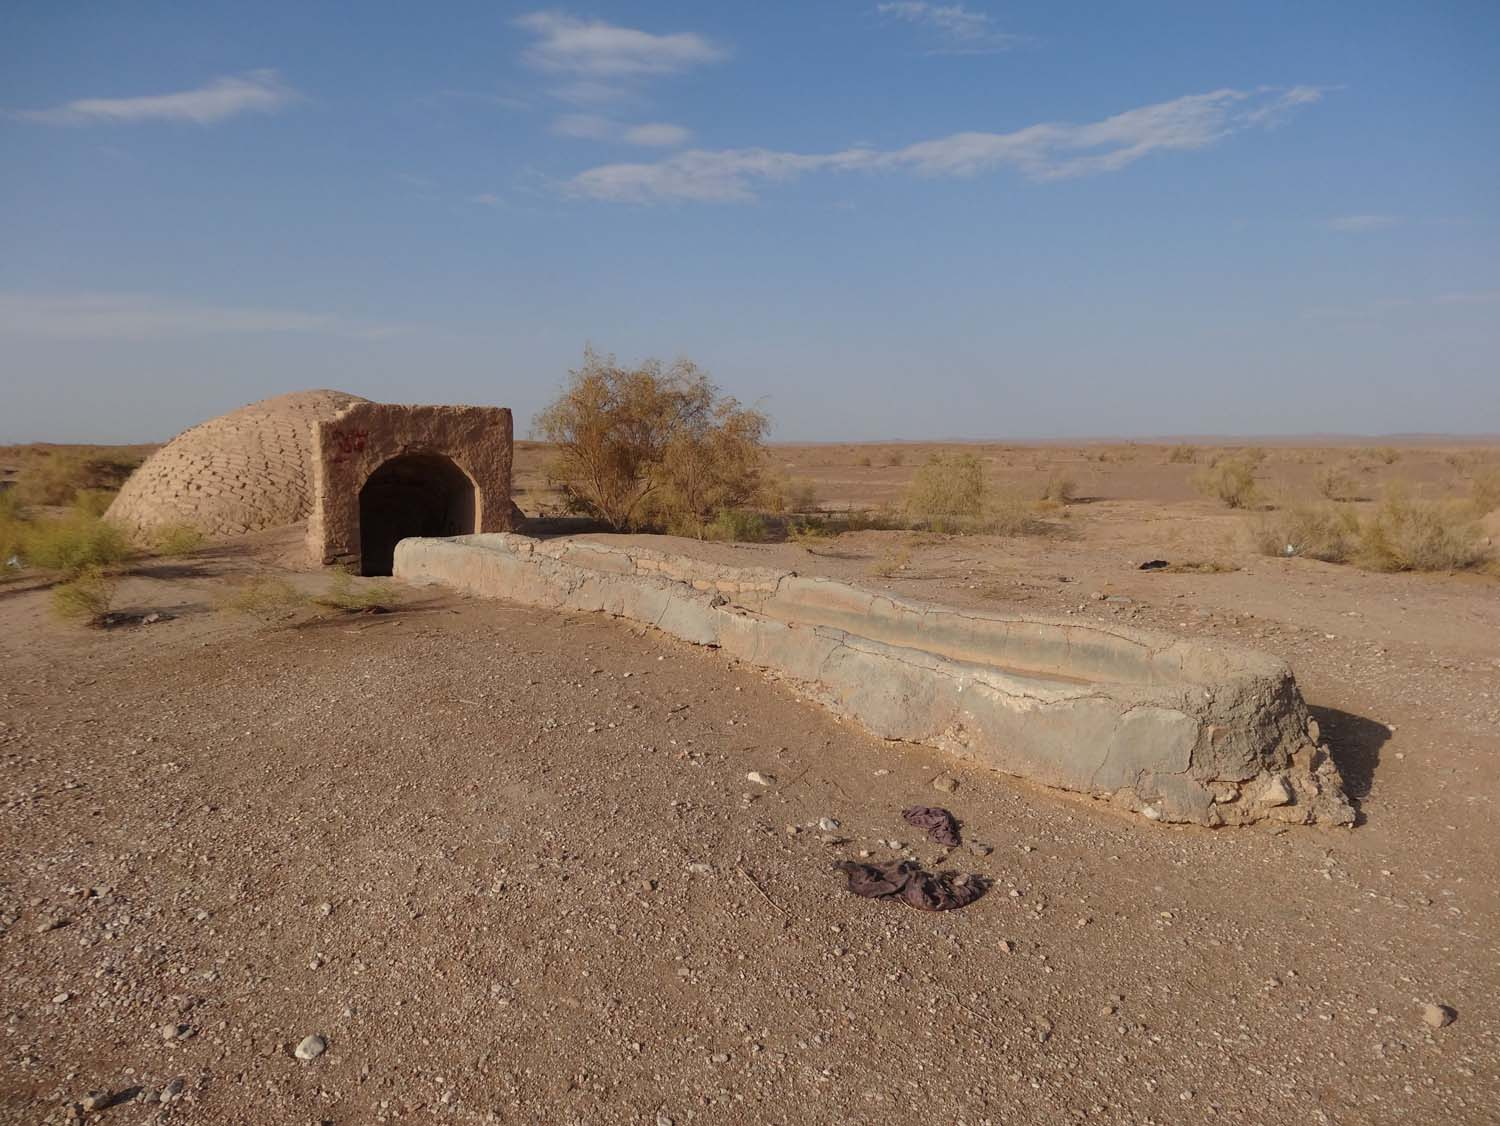 wells in the desert, often linked to the qanats